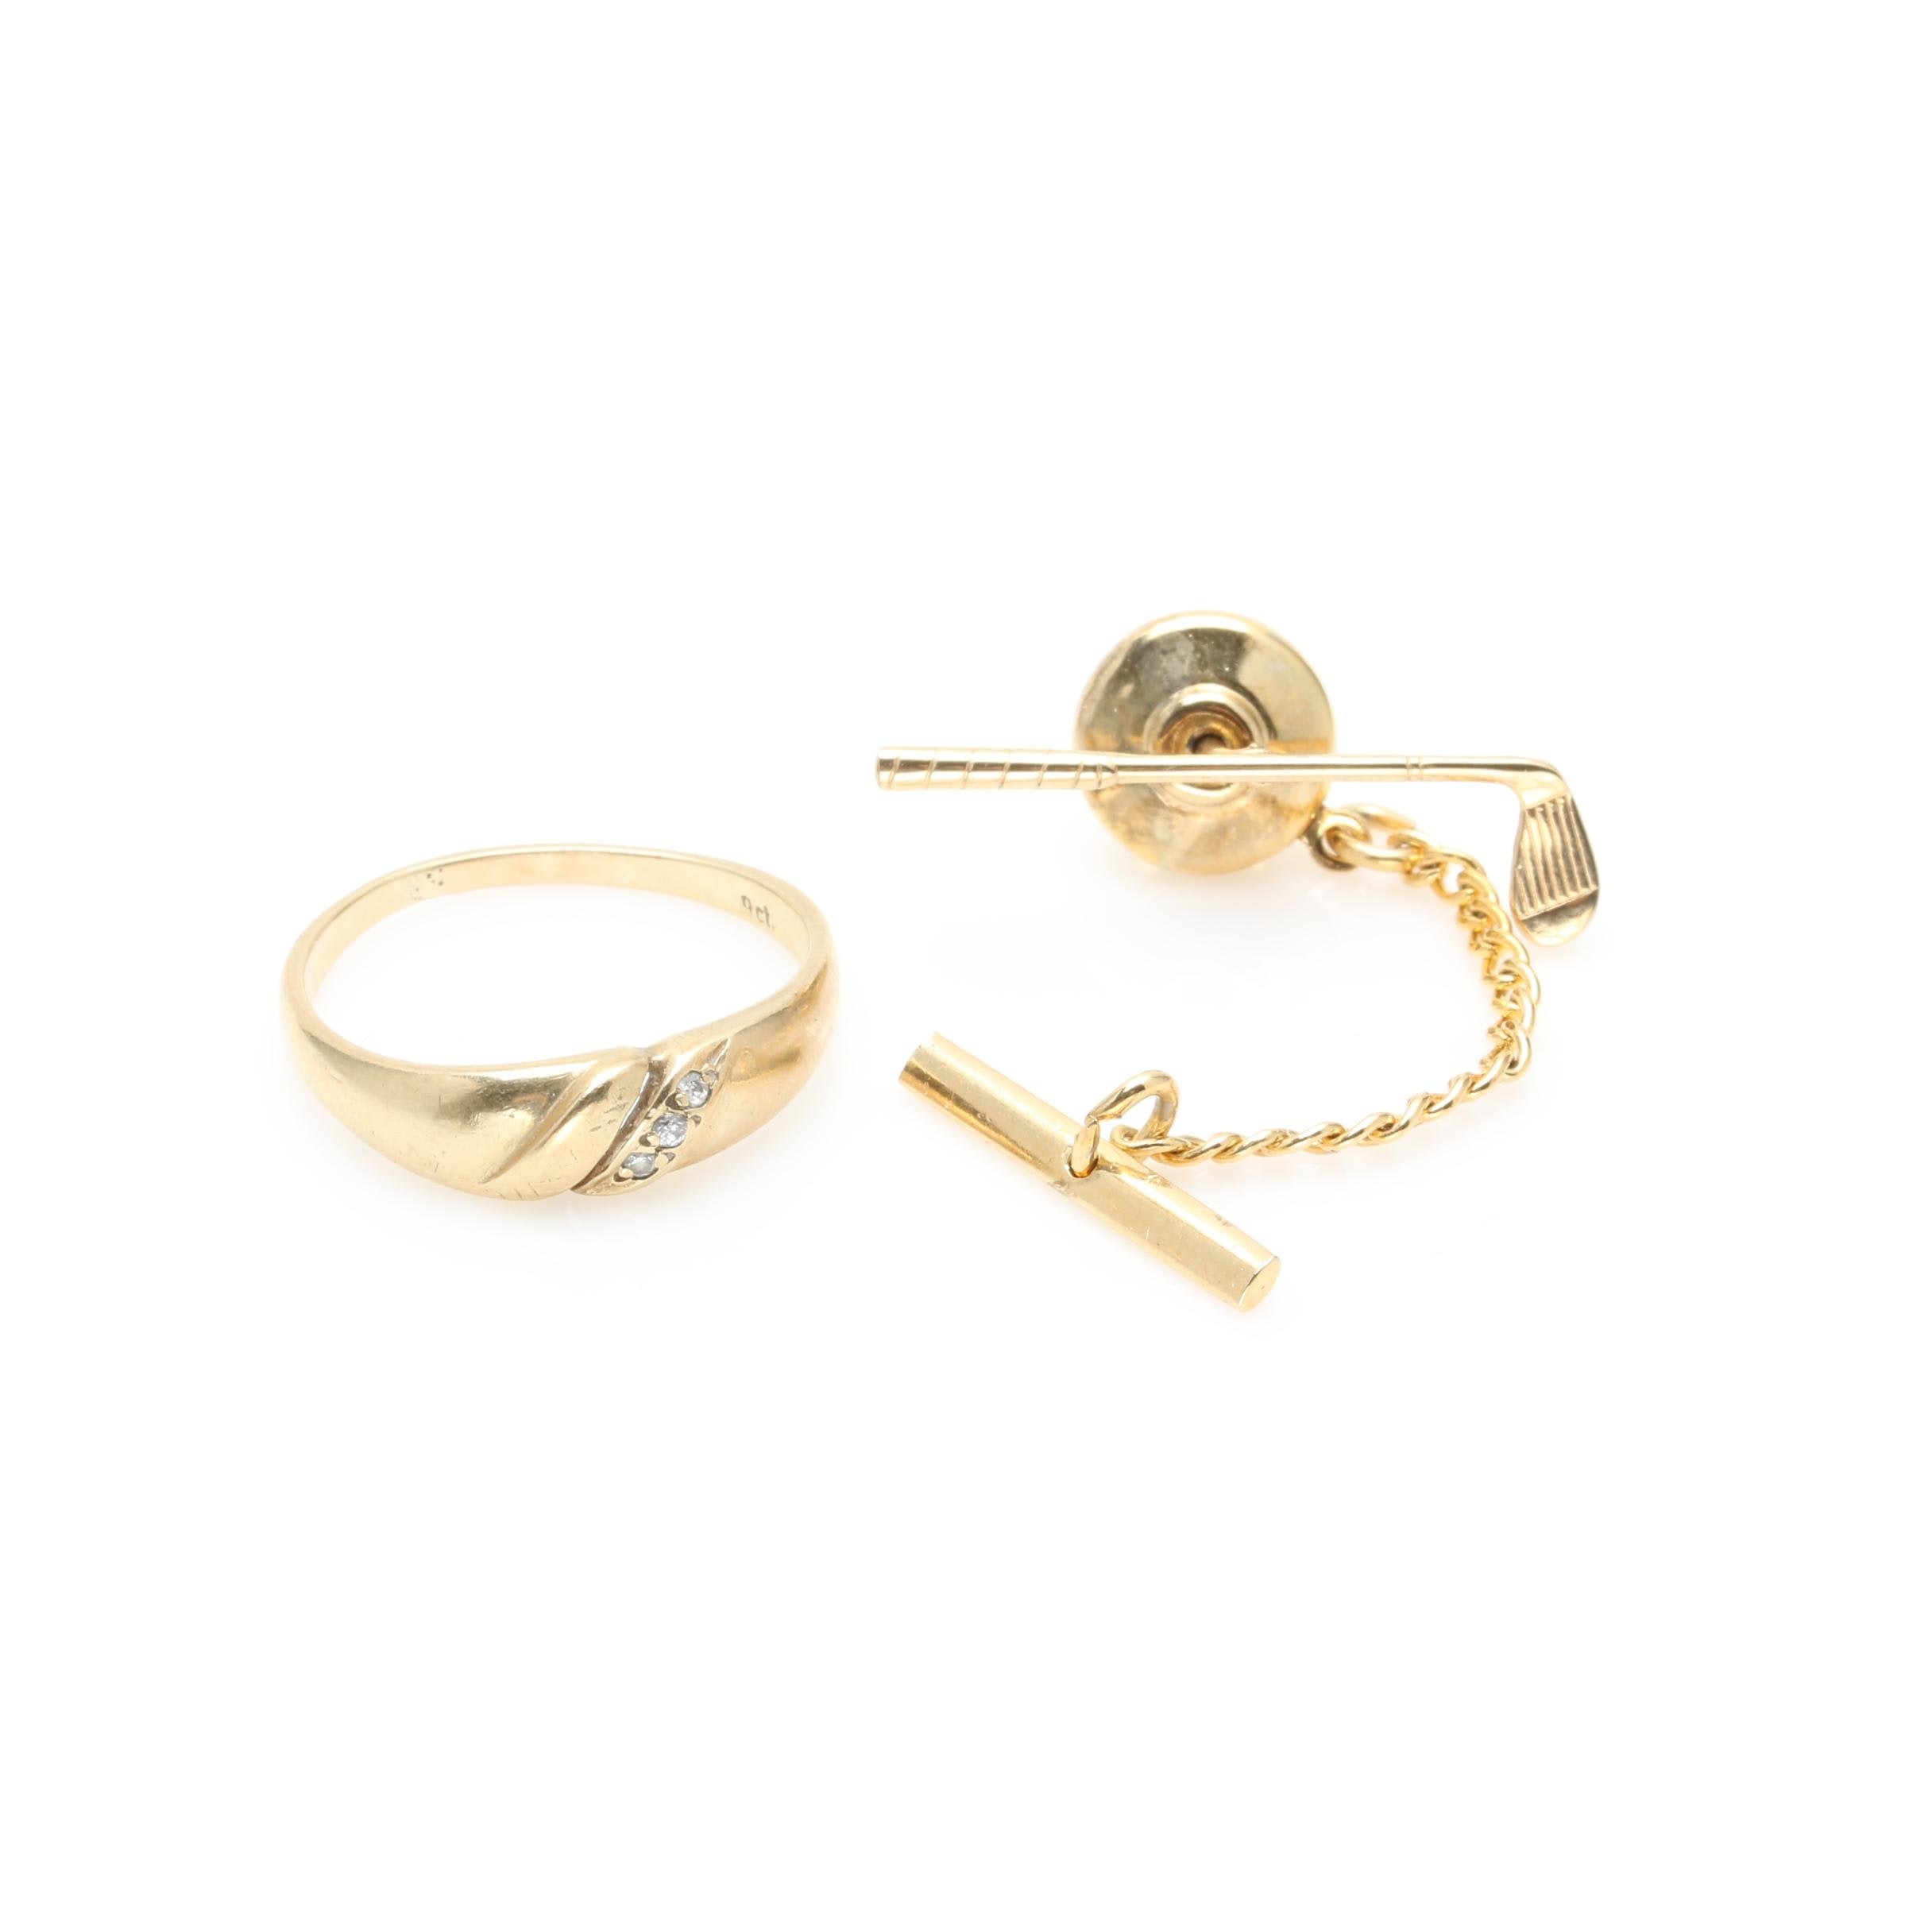 9K and 14K Yellow Gold Golf Tie Tack and Diamond Ring